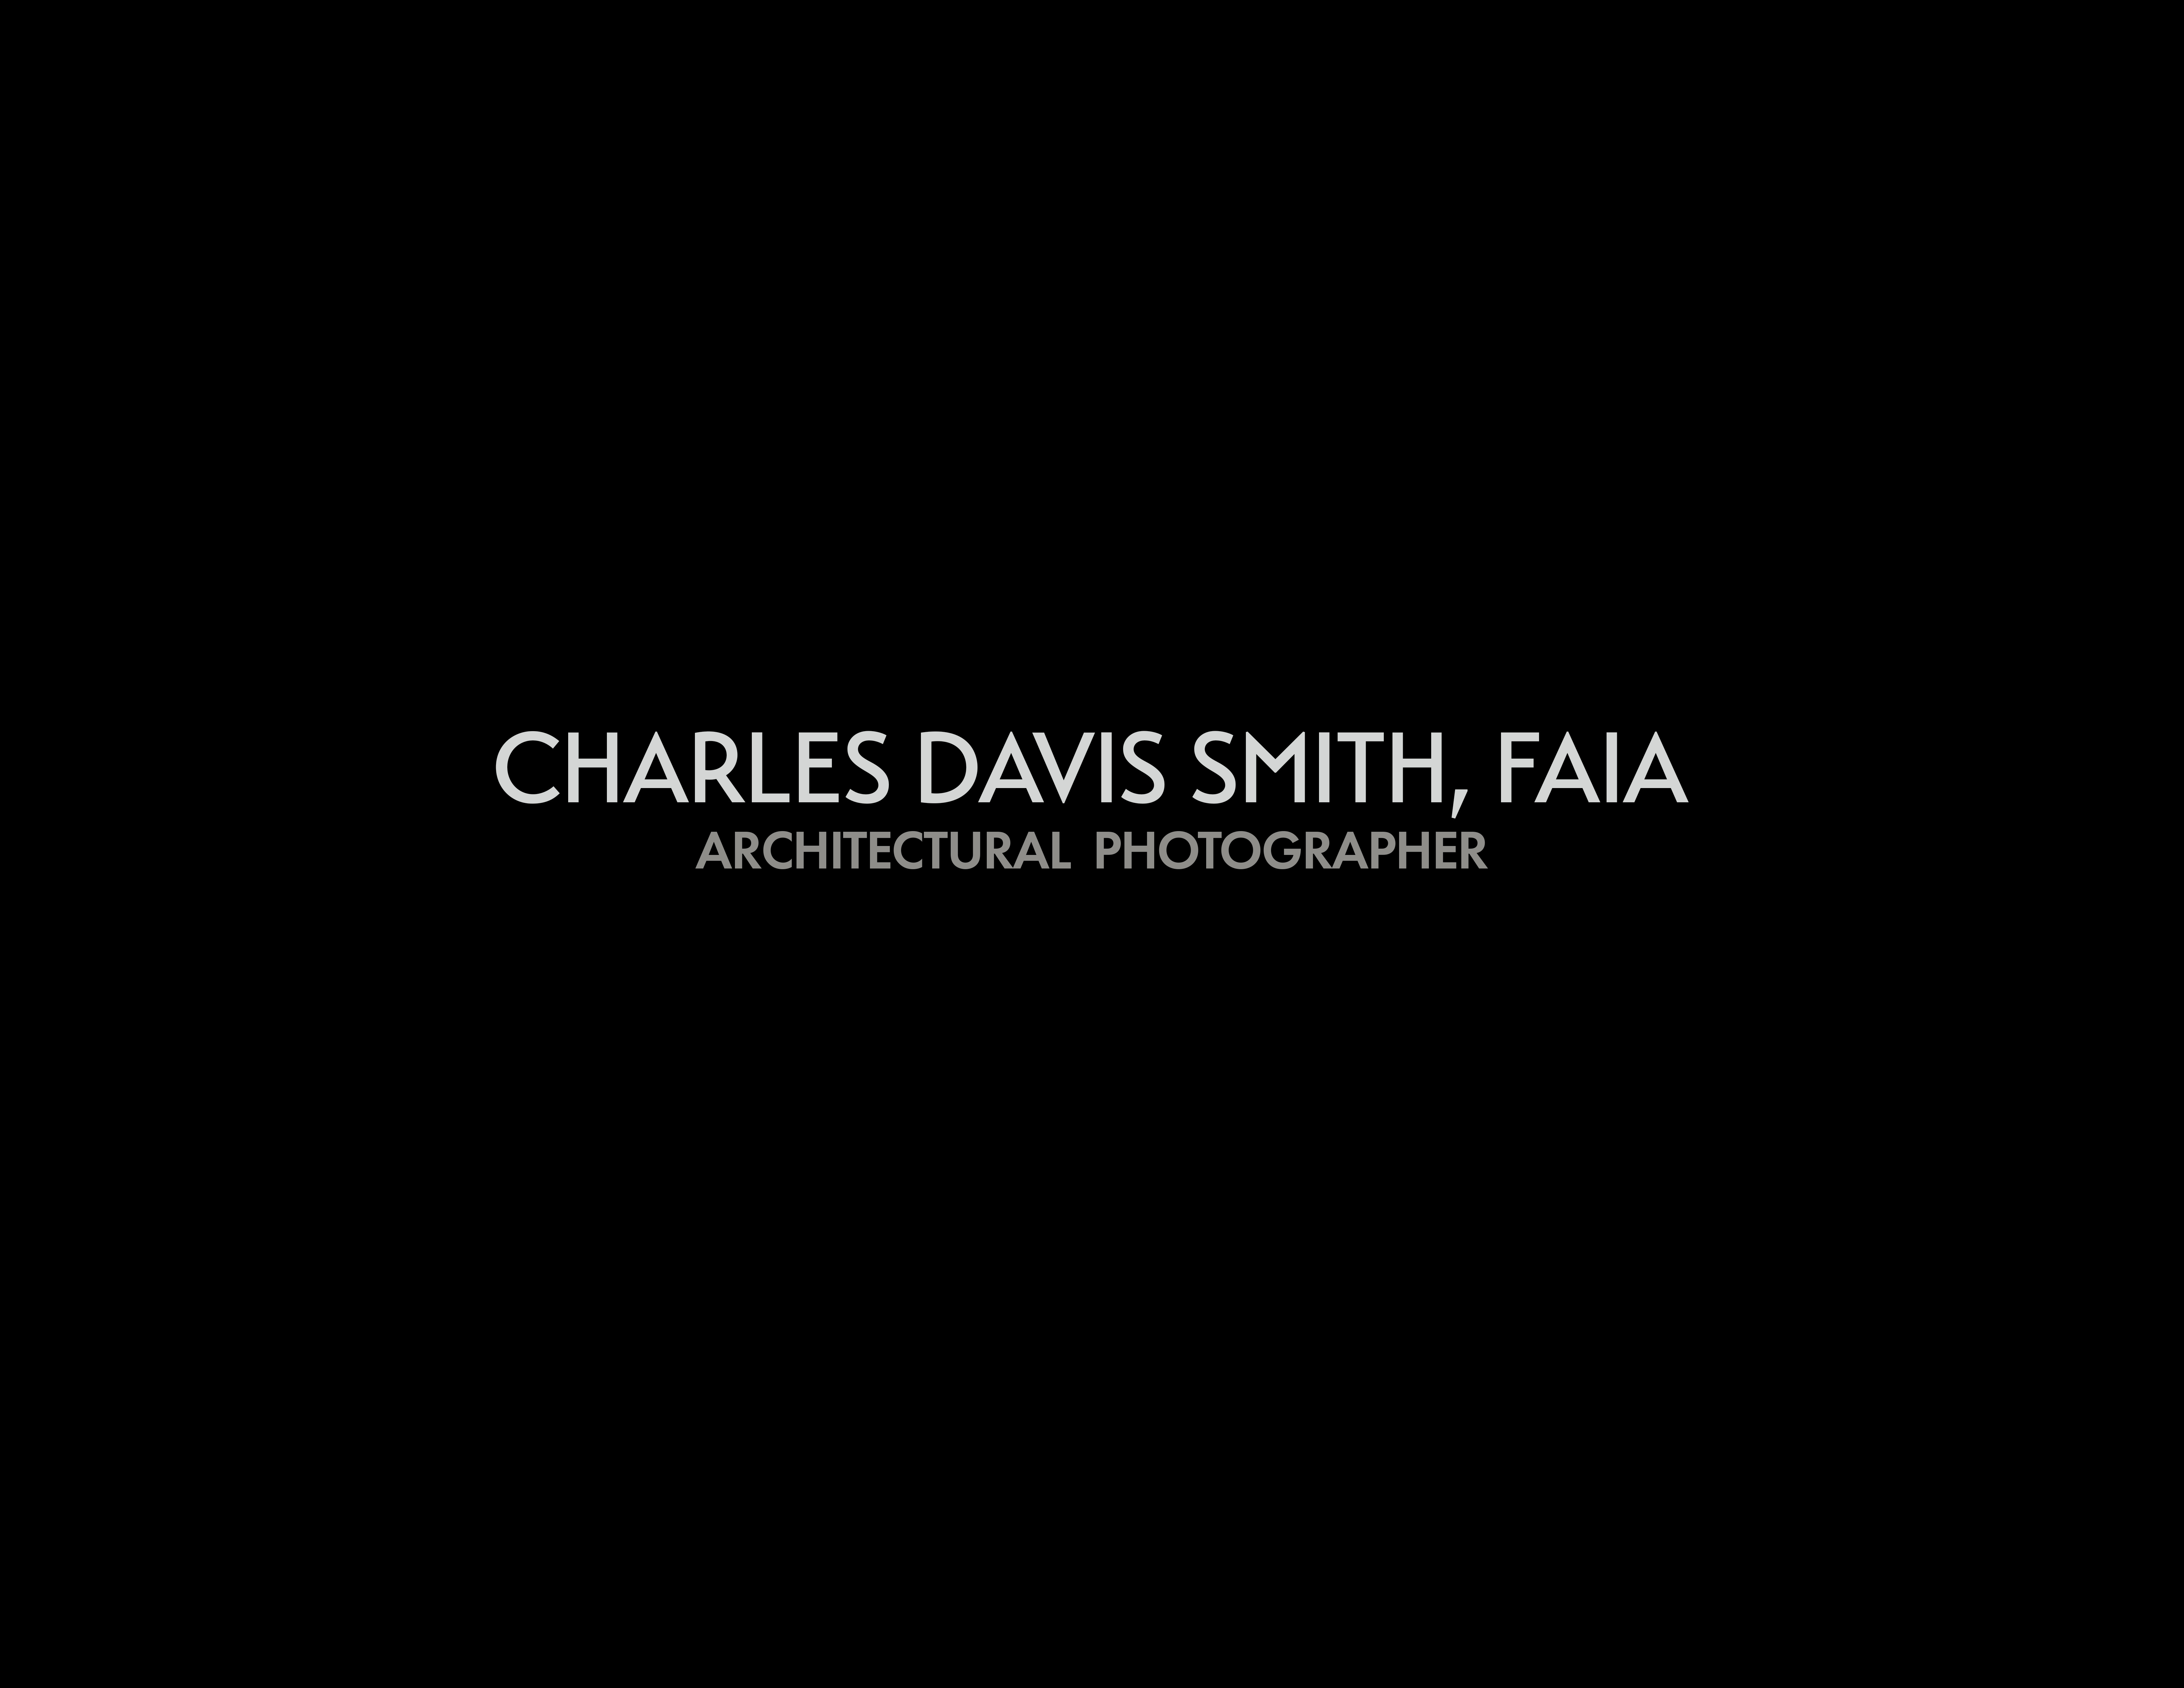 Design Awards: Charles Davis Smith, FAIA logo